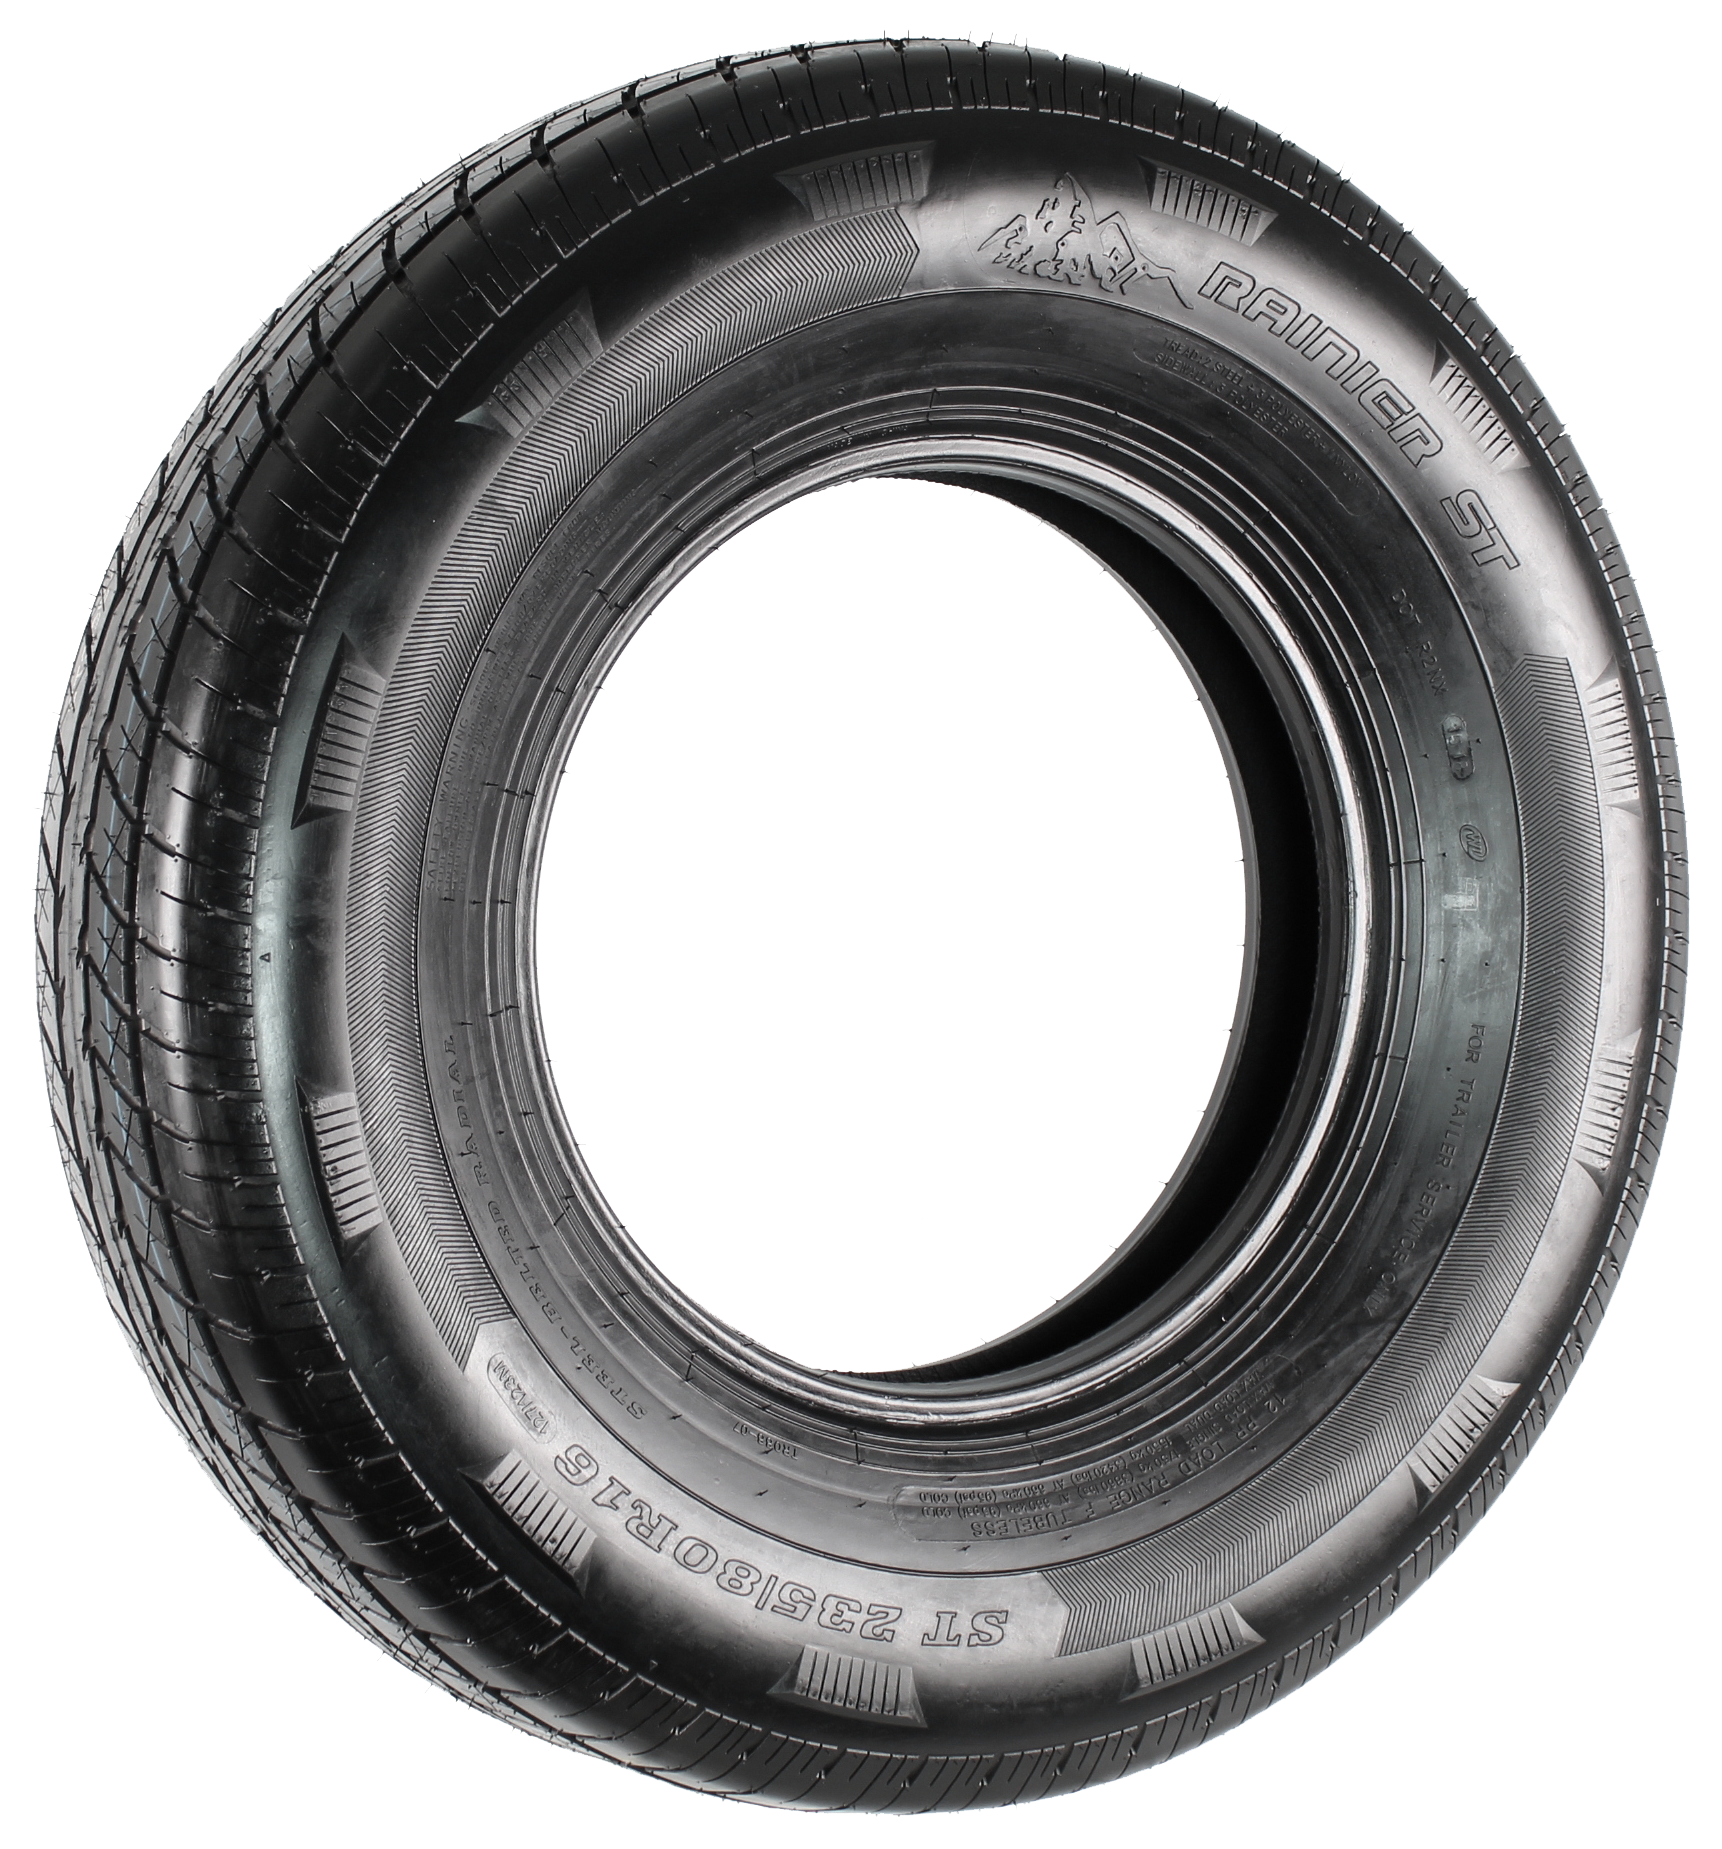 Rainier ST235/80R16 LRE 10-Ply Radial Trailer Tire Image